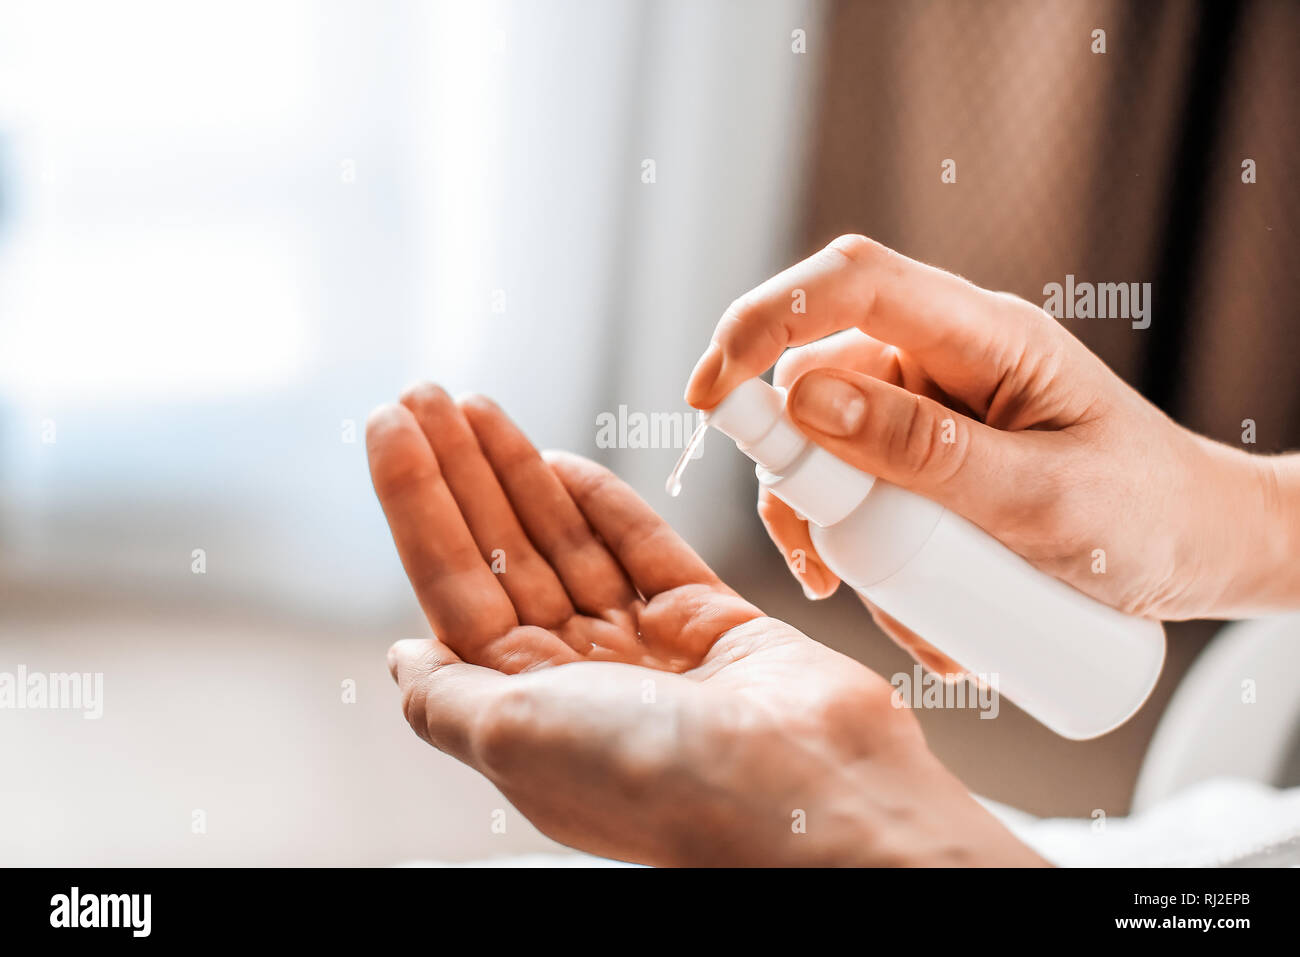 A woman puts on the hands of cosmetics from a bottle or liquid natural soap. Body care concept Stock Photo